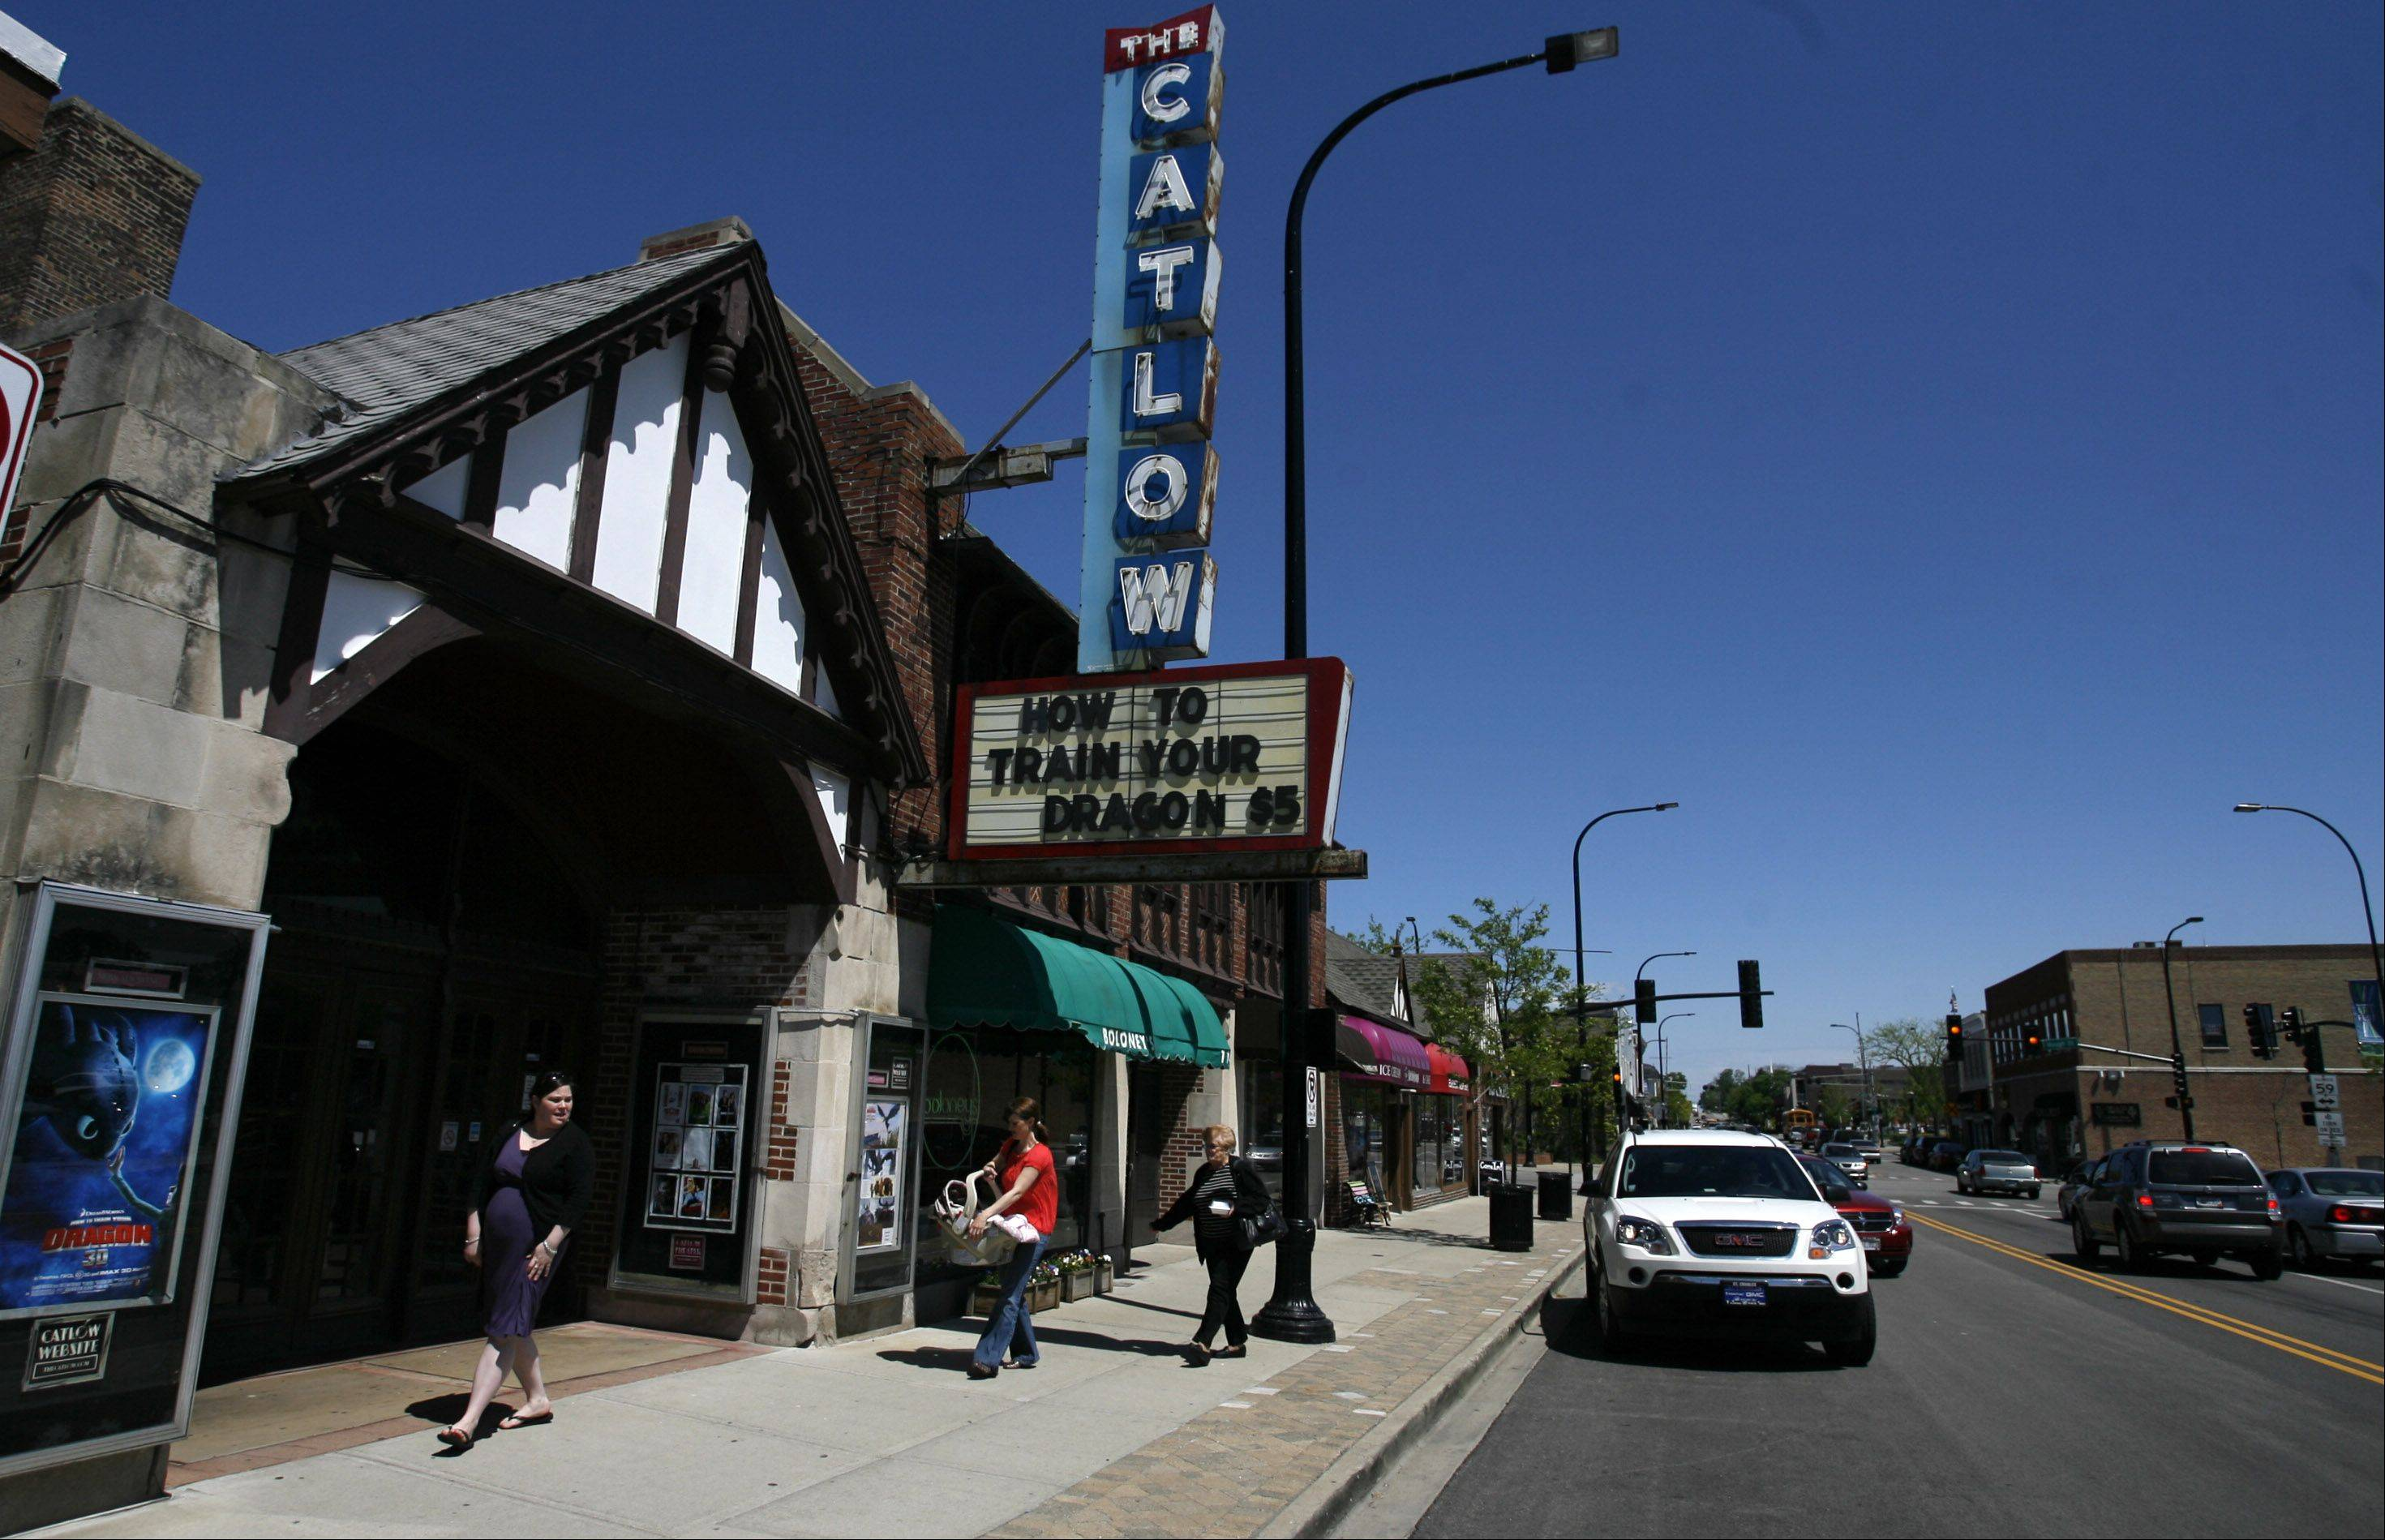 Catlow owner seeks online help to save theater